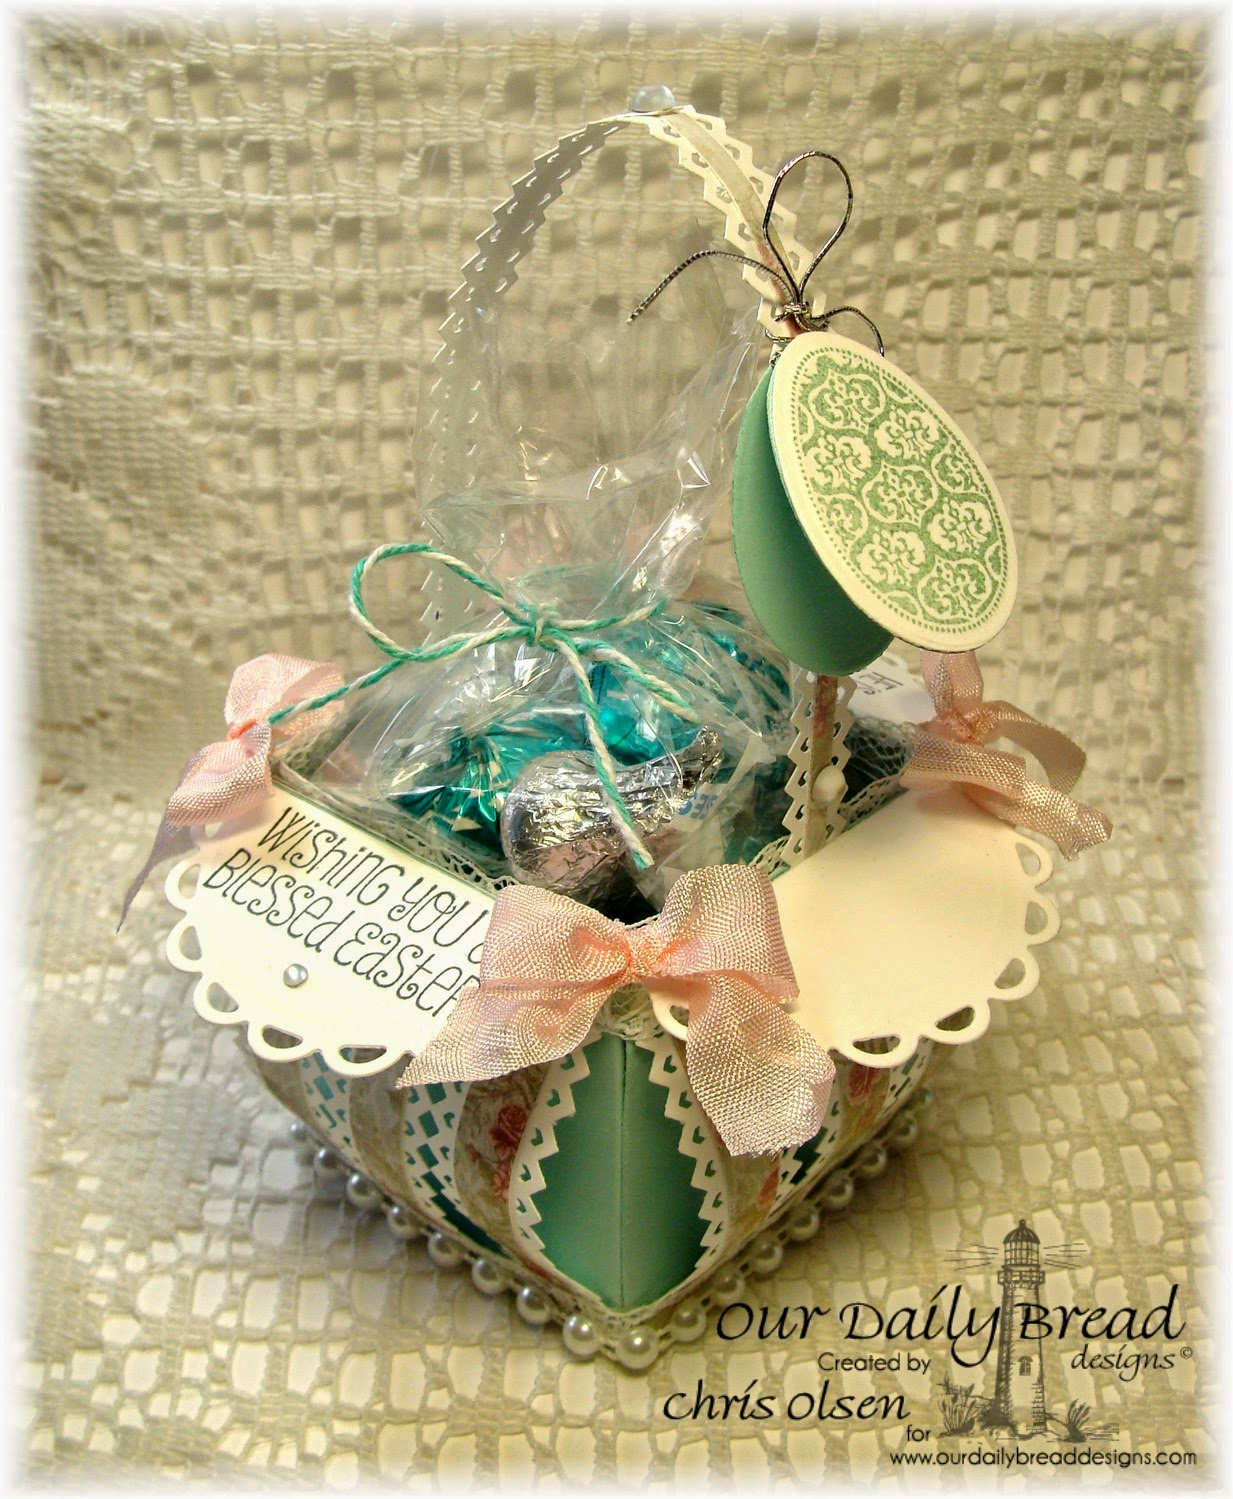 Our Daily Bread Designs, Shabby Rose Collection Paper, Blessed Easter, Egg dies, designed by Chris Olsen